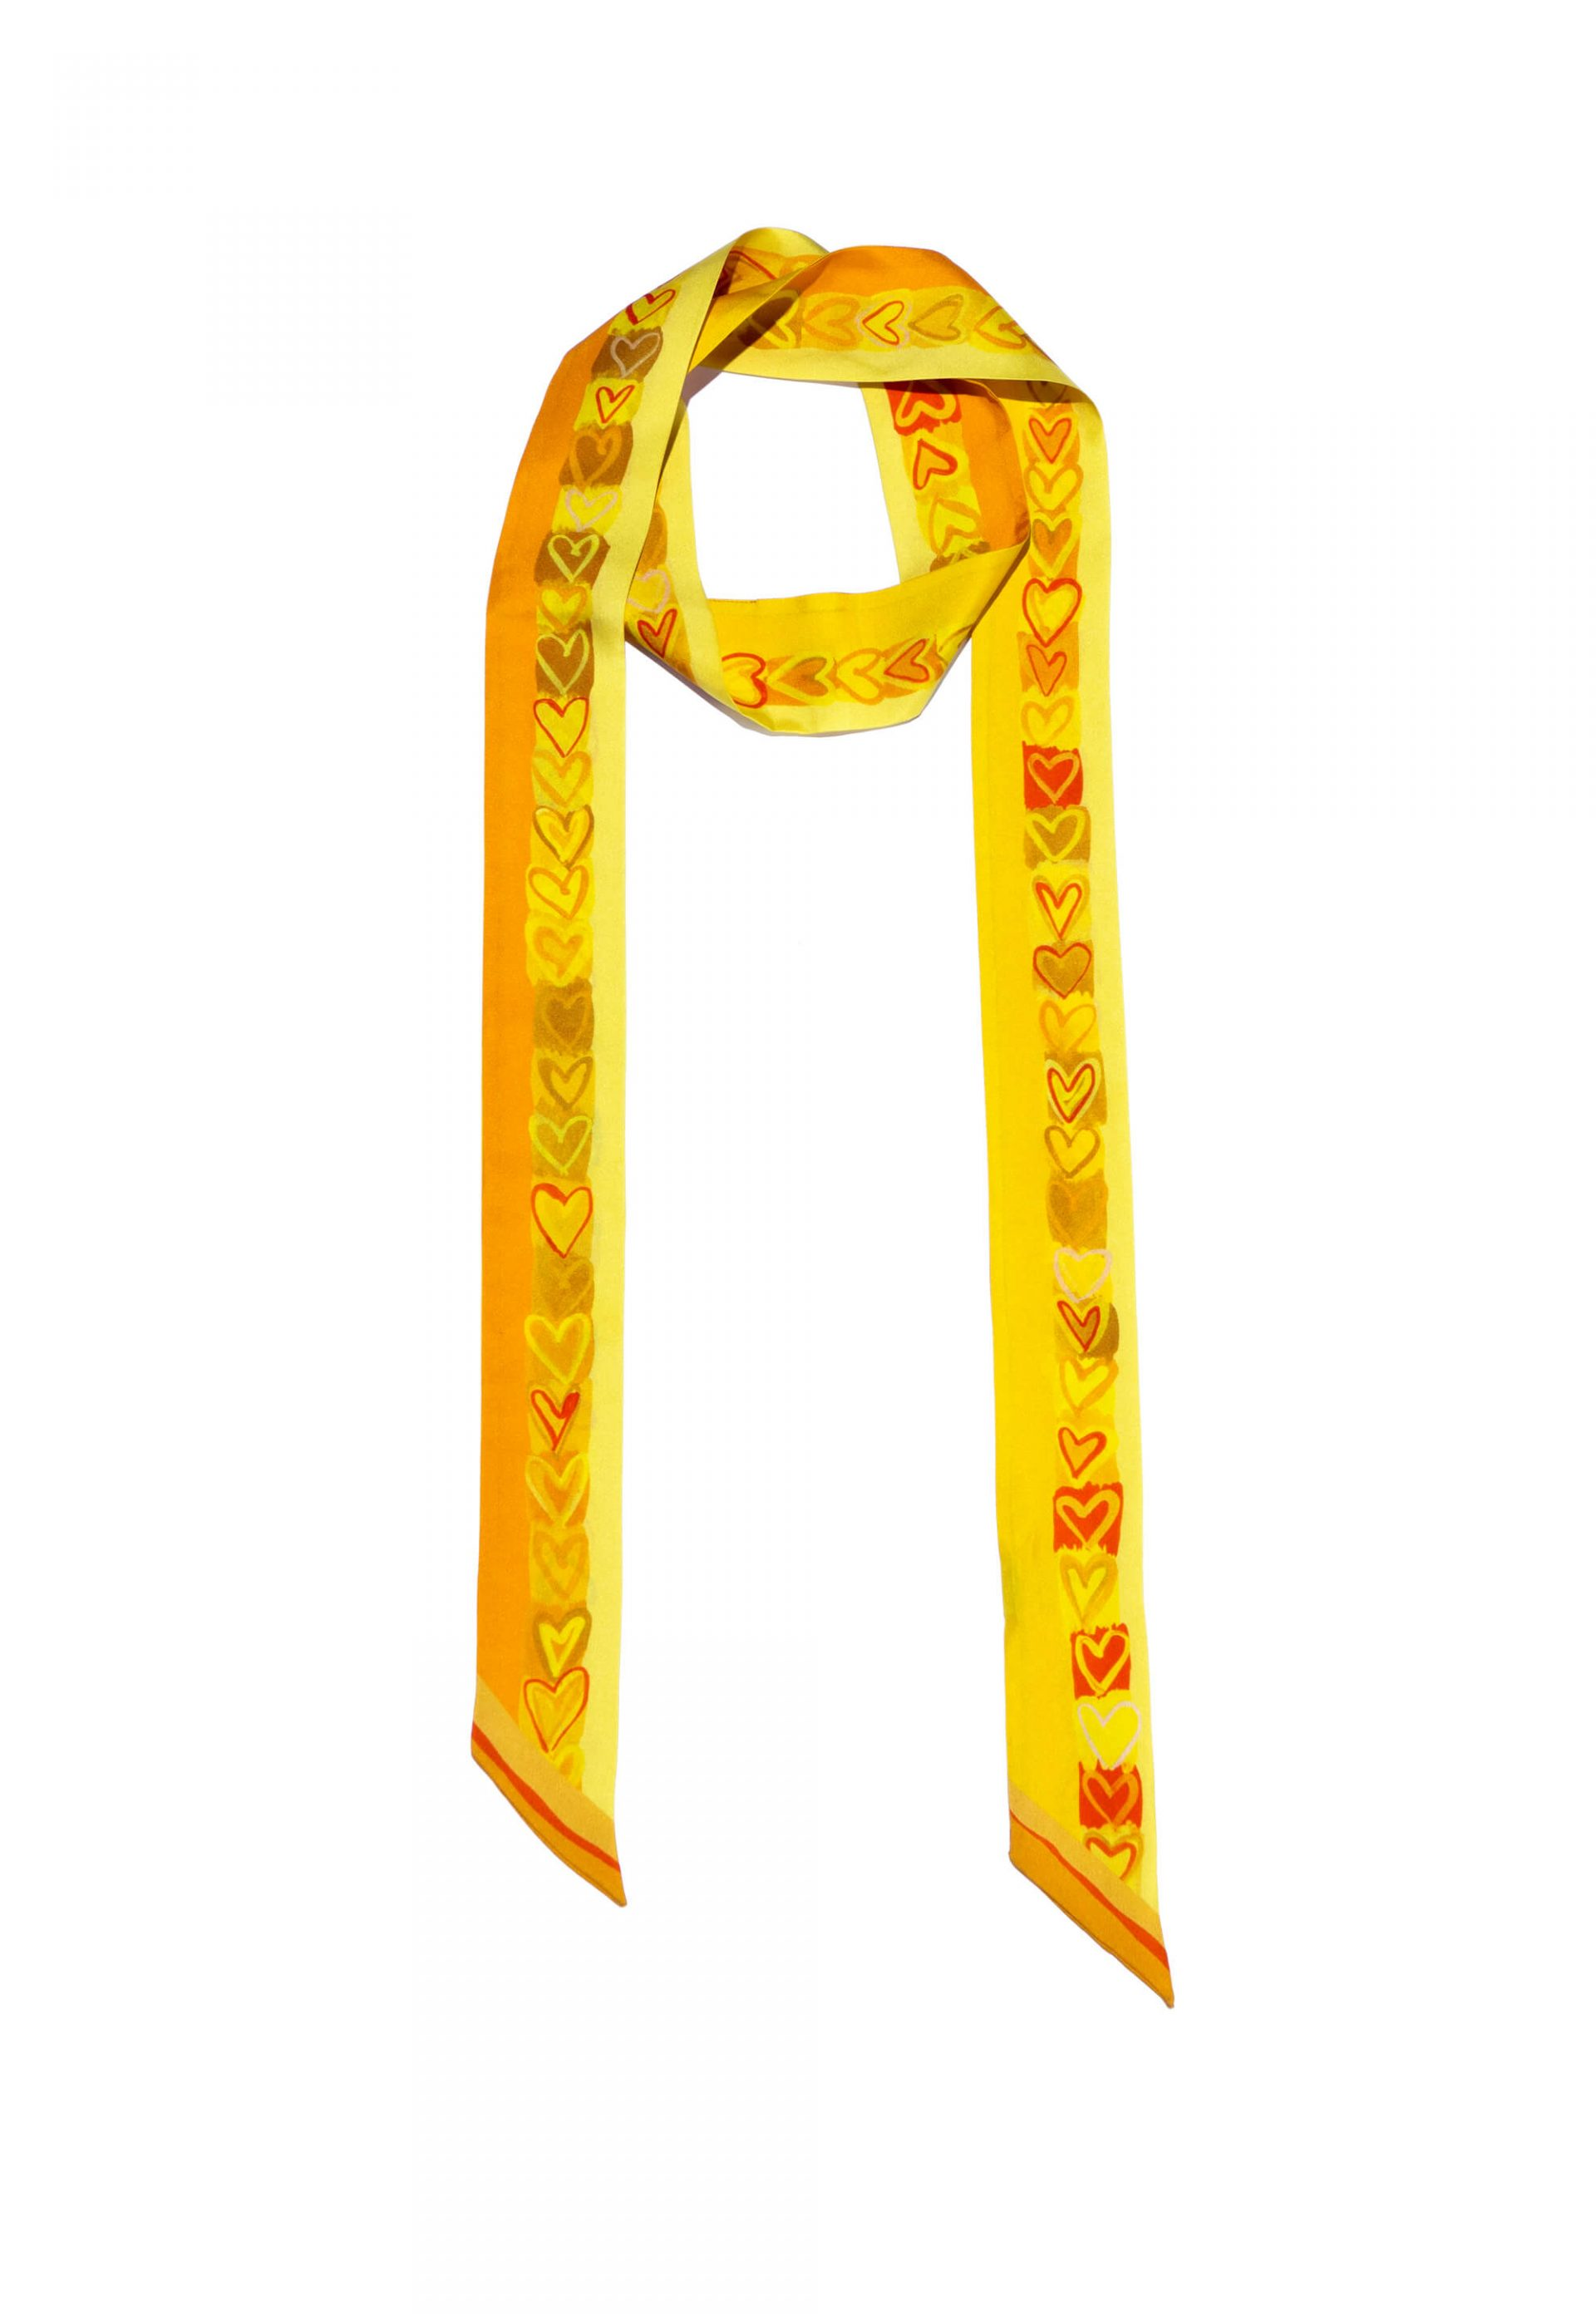 Yellow twilly silk scarf, Long and narrow scarf with printed hearts by Dikla Levsky